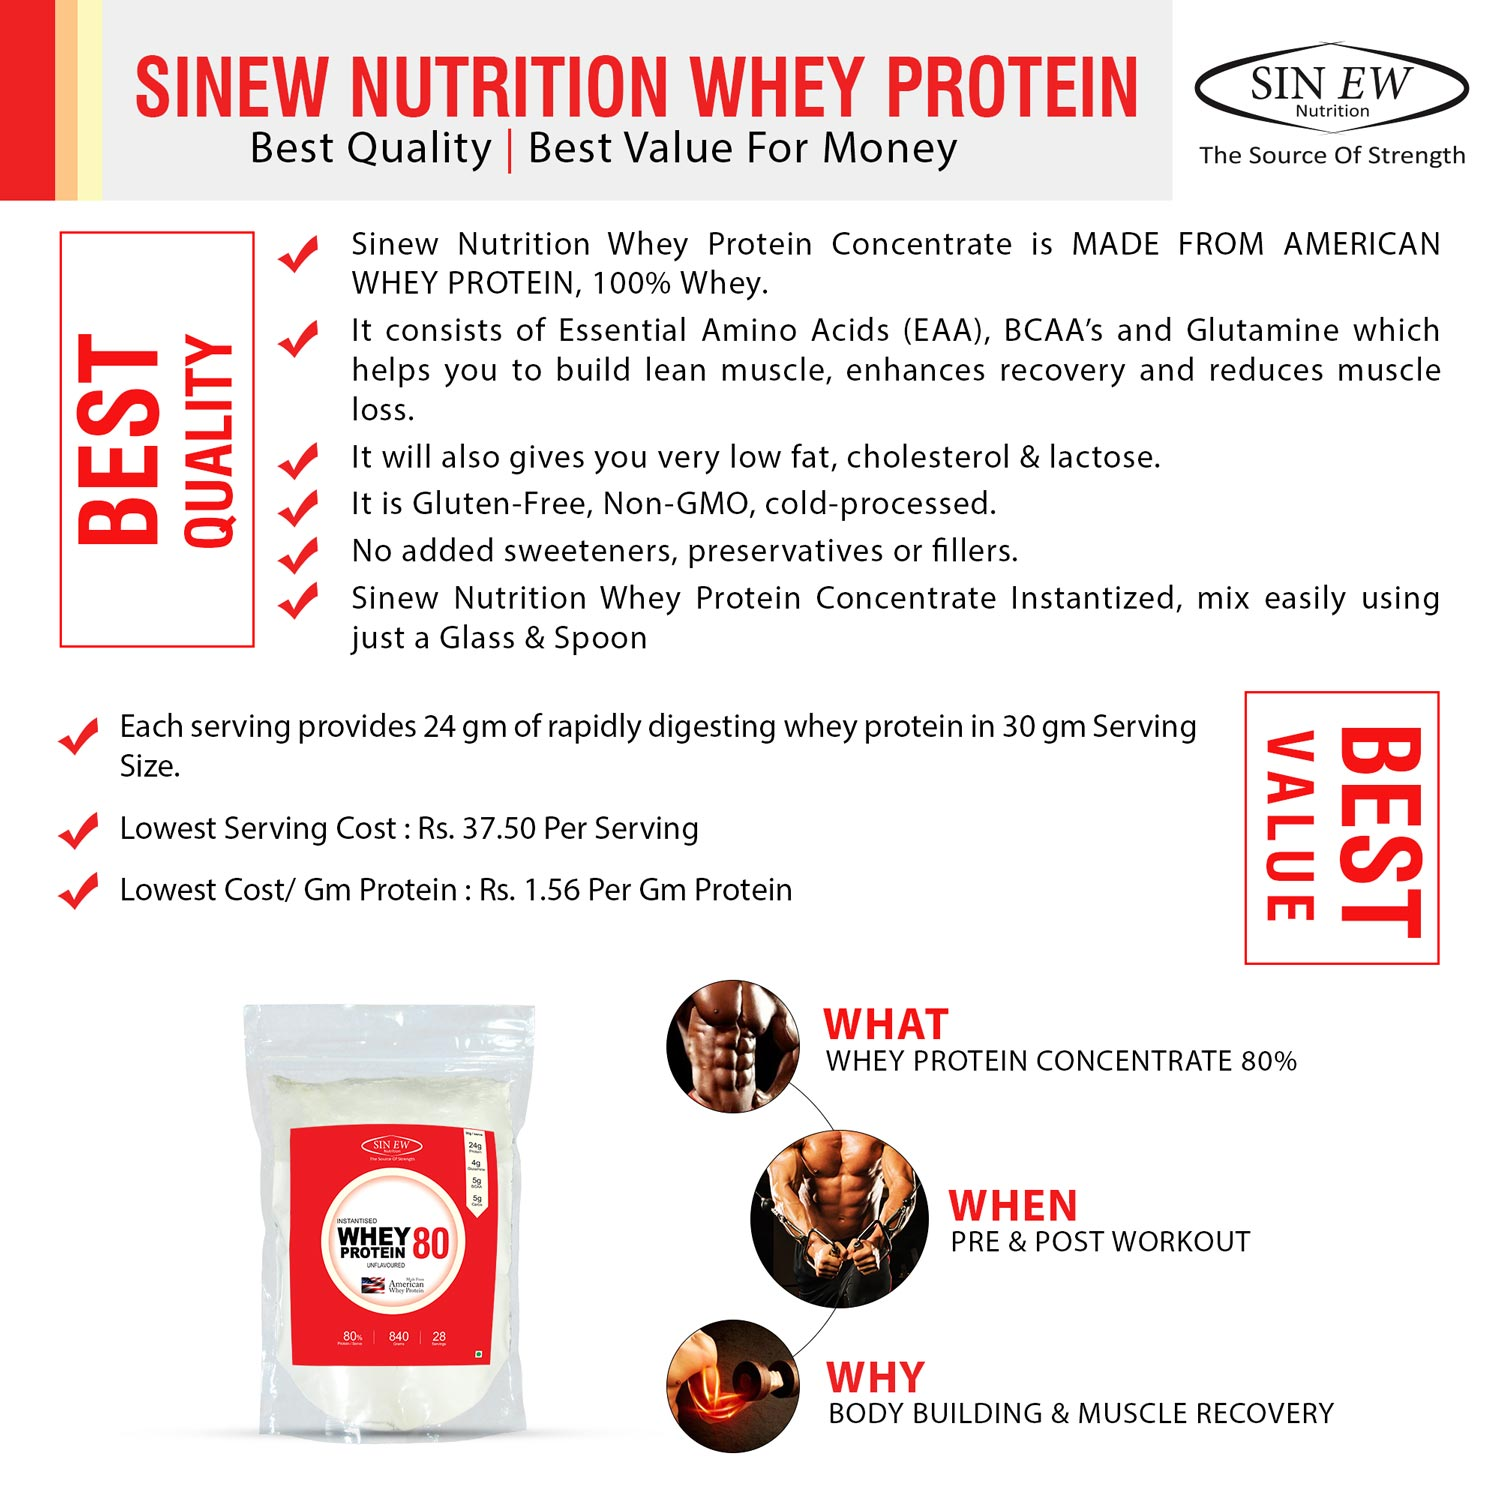 Whey Protein Image 2nd